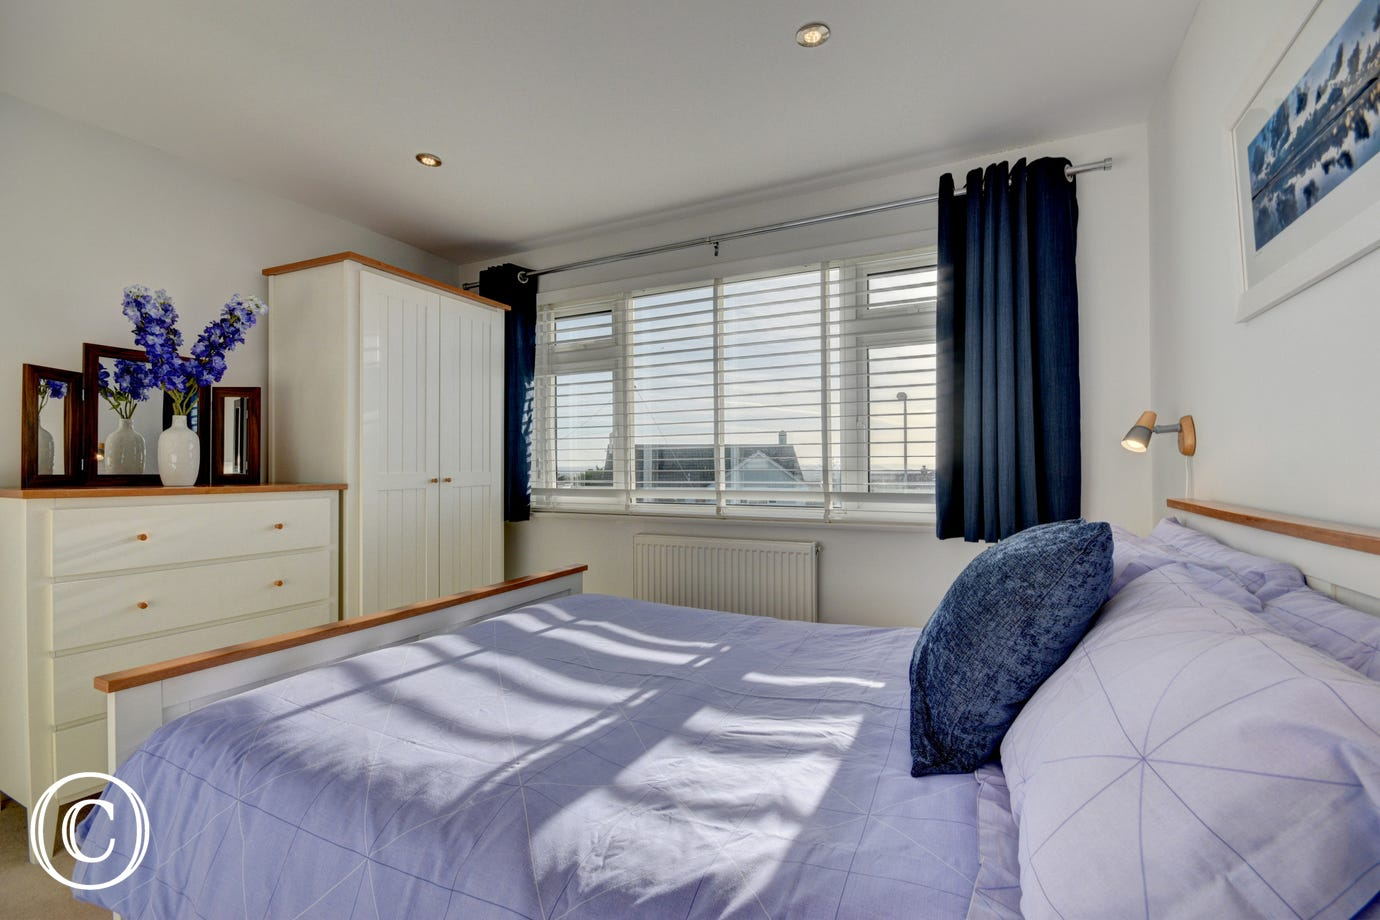 The lovely double bedroom with matching cream furniture